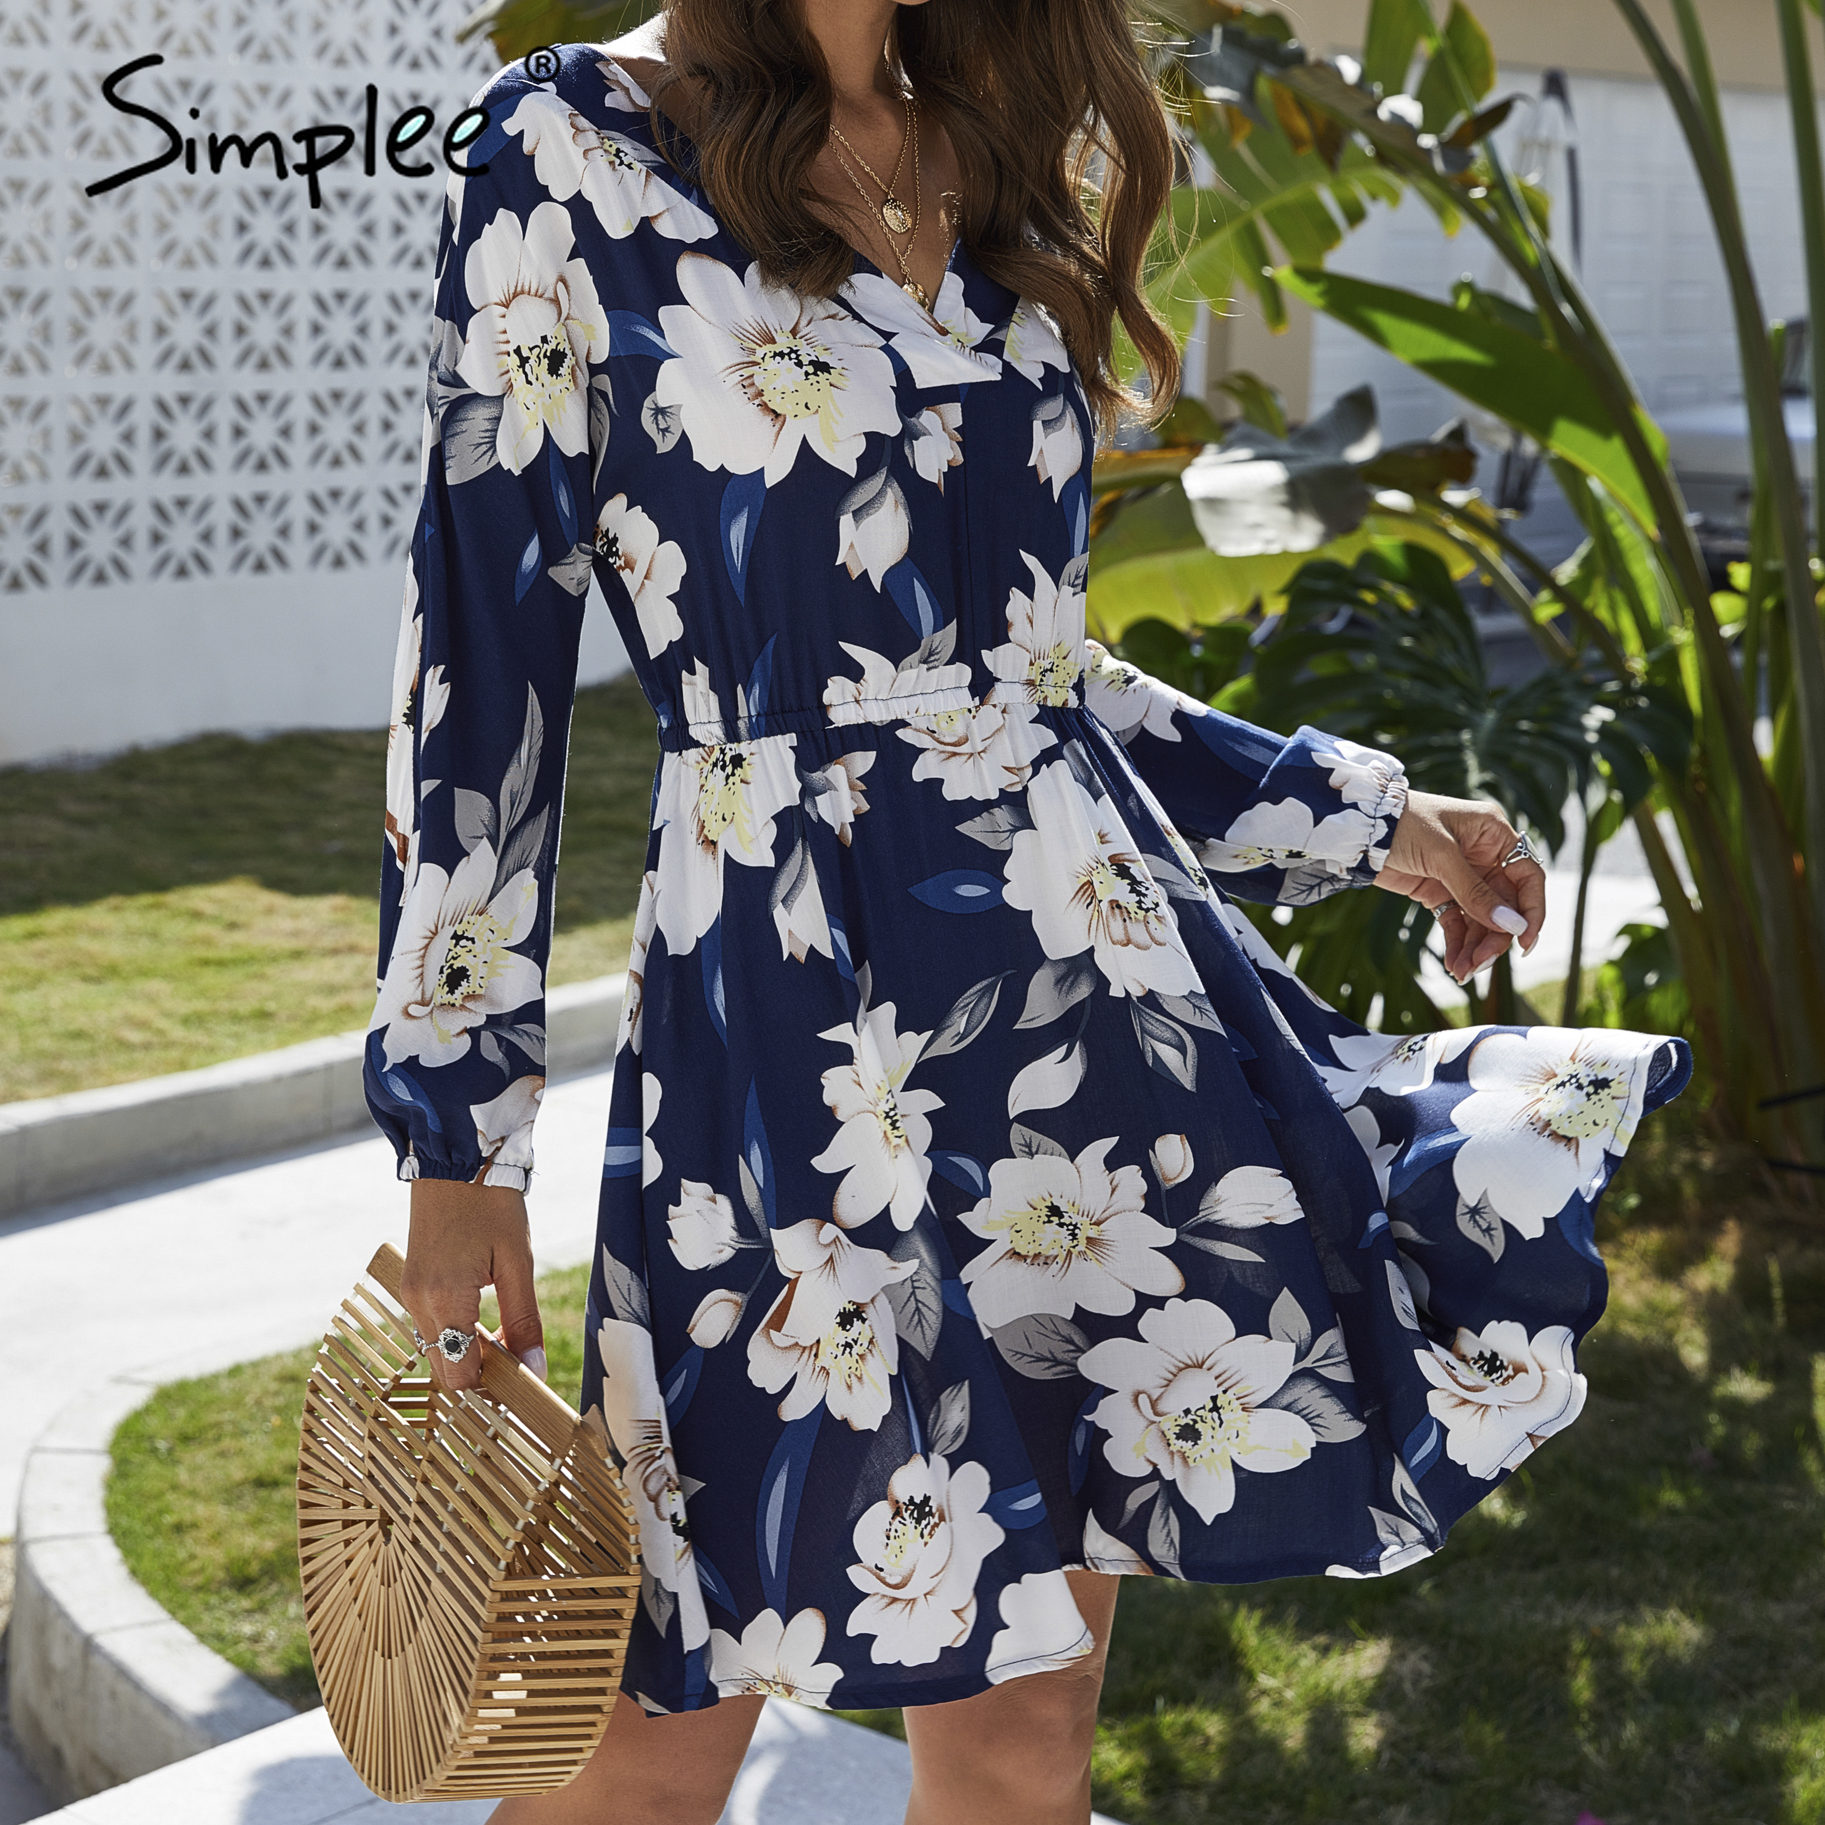 Simplee Floral print women dress Casual long sleeve v neck holiday summer dress Streetwear boho a line beach wear midi dress